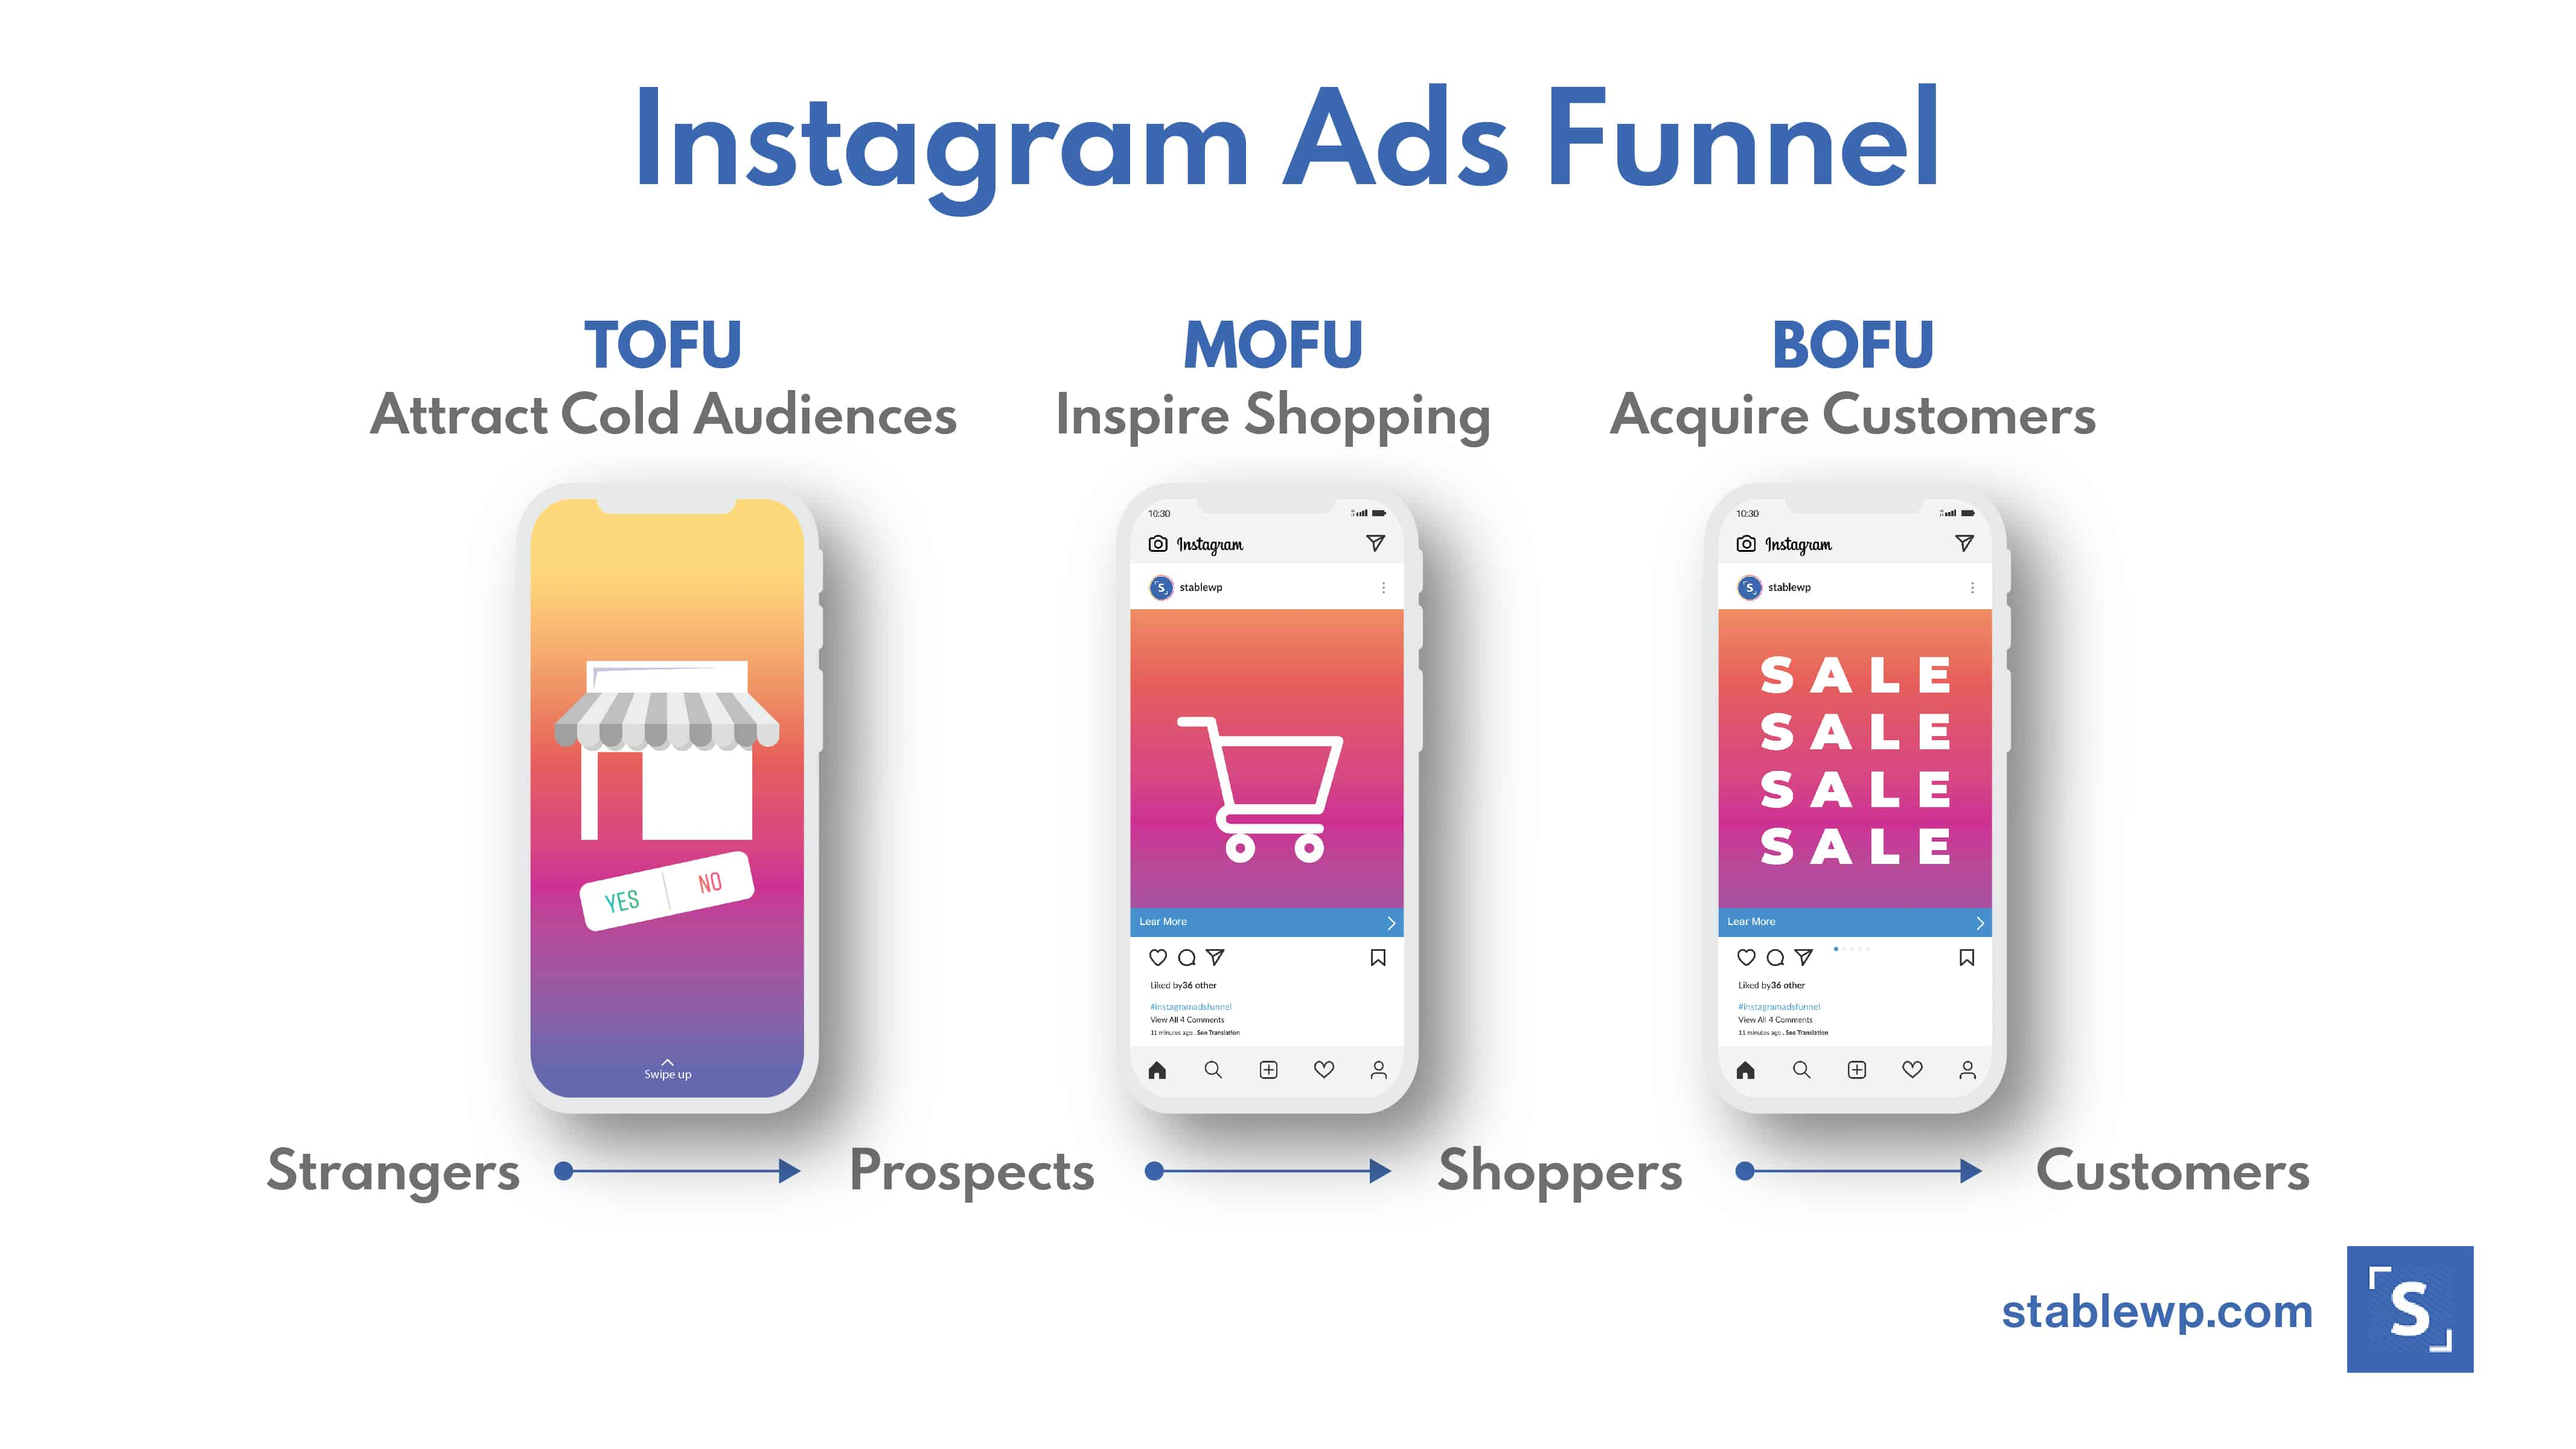 instagram ads funnel with three stages: TOFU - attract strangers and turn them into prospects, MOFU - turn prospects into active shoppers, BOFU - convert shoppers into paying customers